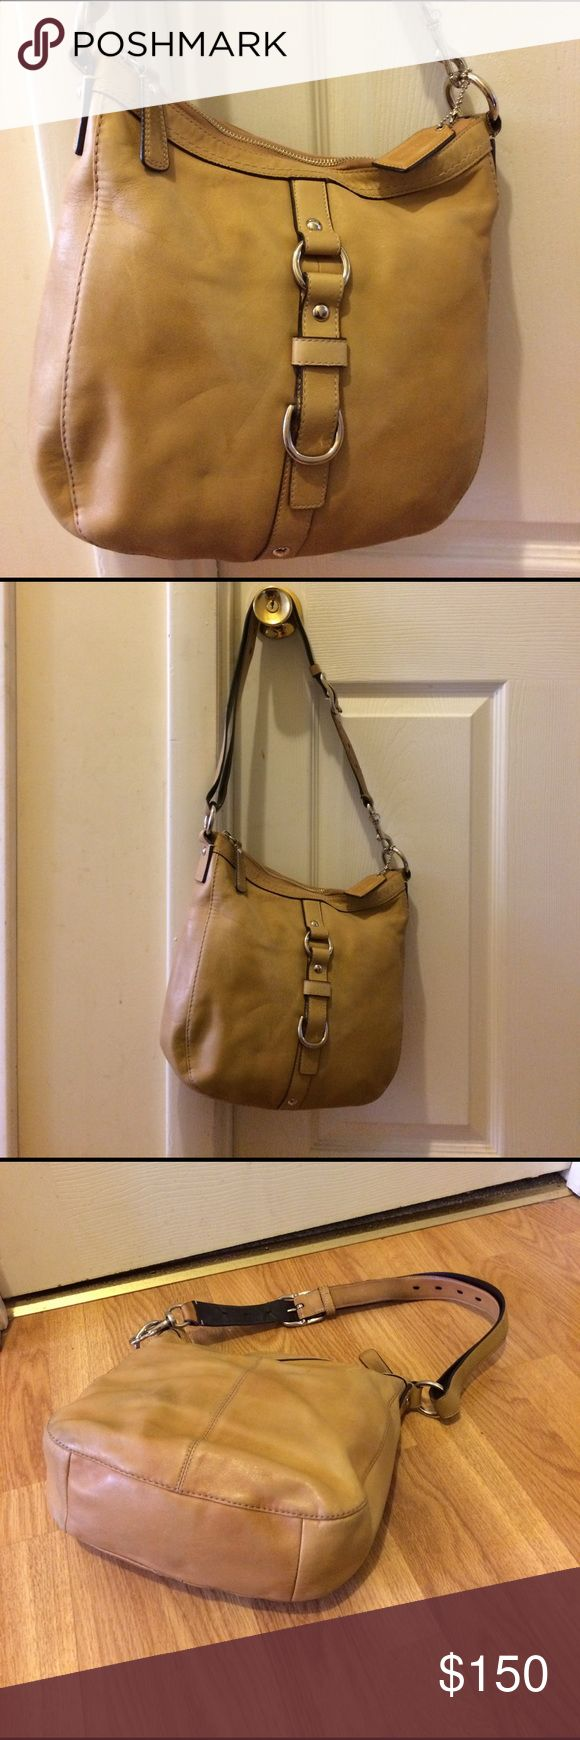 """Coach leather Chelsea handbag 14018 Used condition staining on outside leather scuffs on leather please see pictures for condition measurements approximately 11"""" x 11"""" smoke-free pet free home no returns please ask all questions prior to purchase thank you Coach Bags Shoulder Bags"""